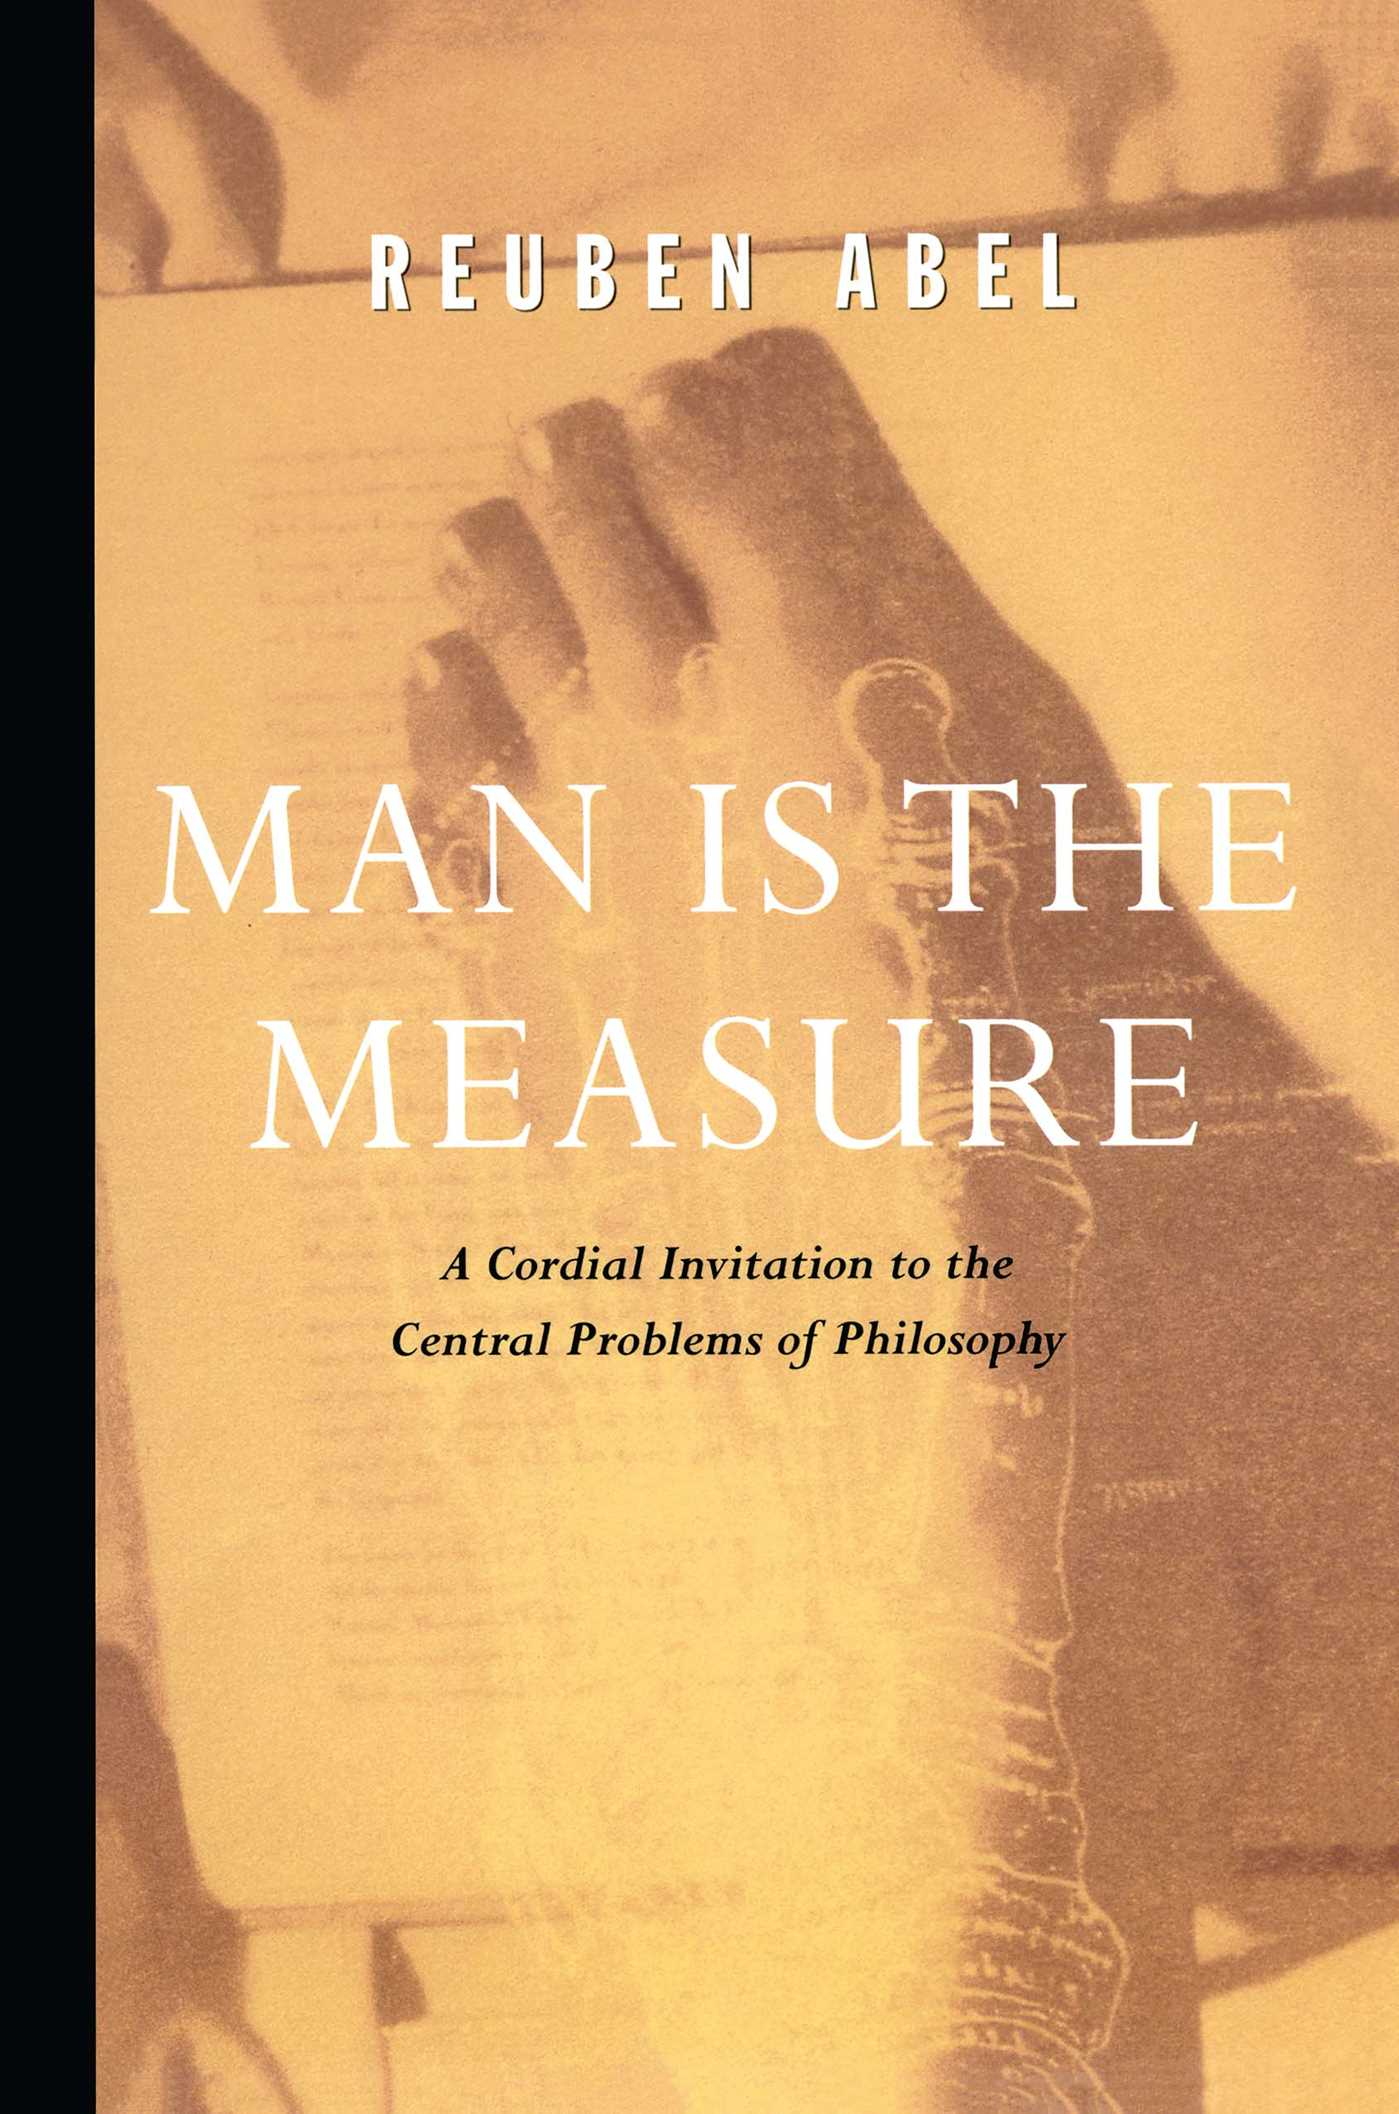 Man-is-the-measure-9781439118405_hr